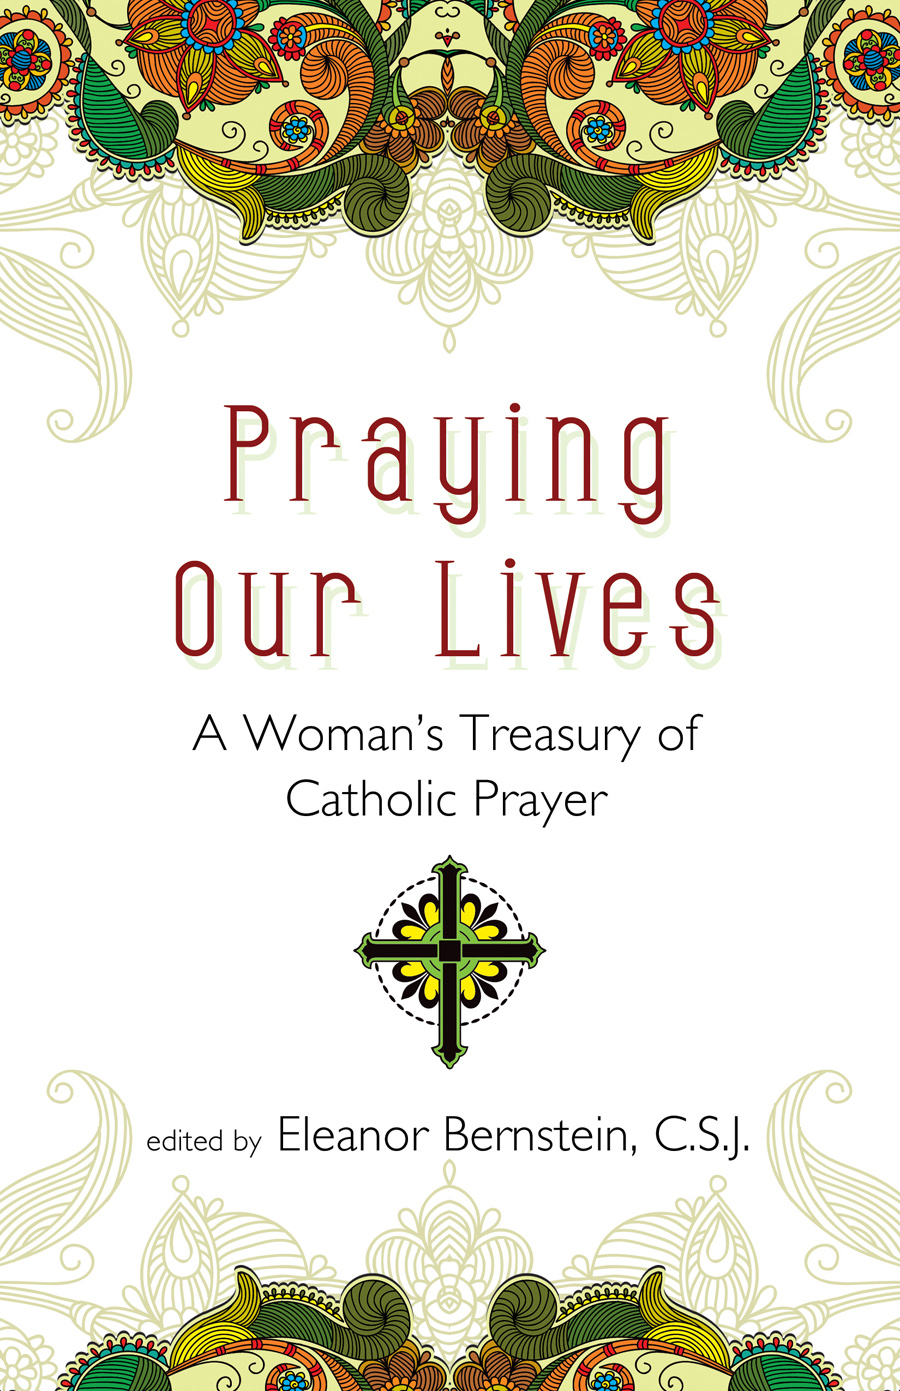 Praying Our Lives: A Woman's Treasury of Catholic Prayer